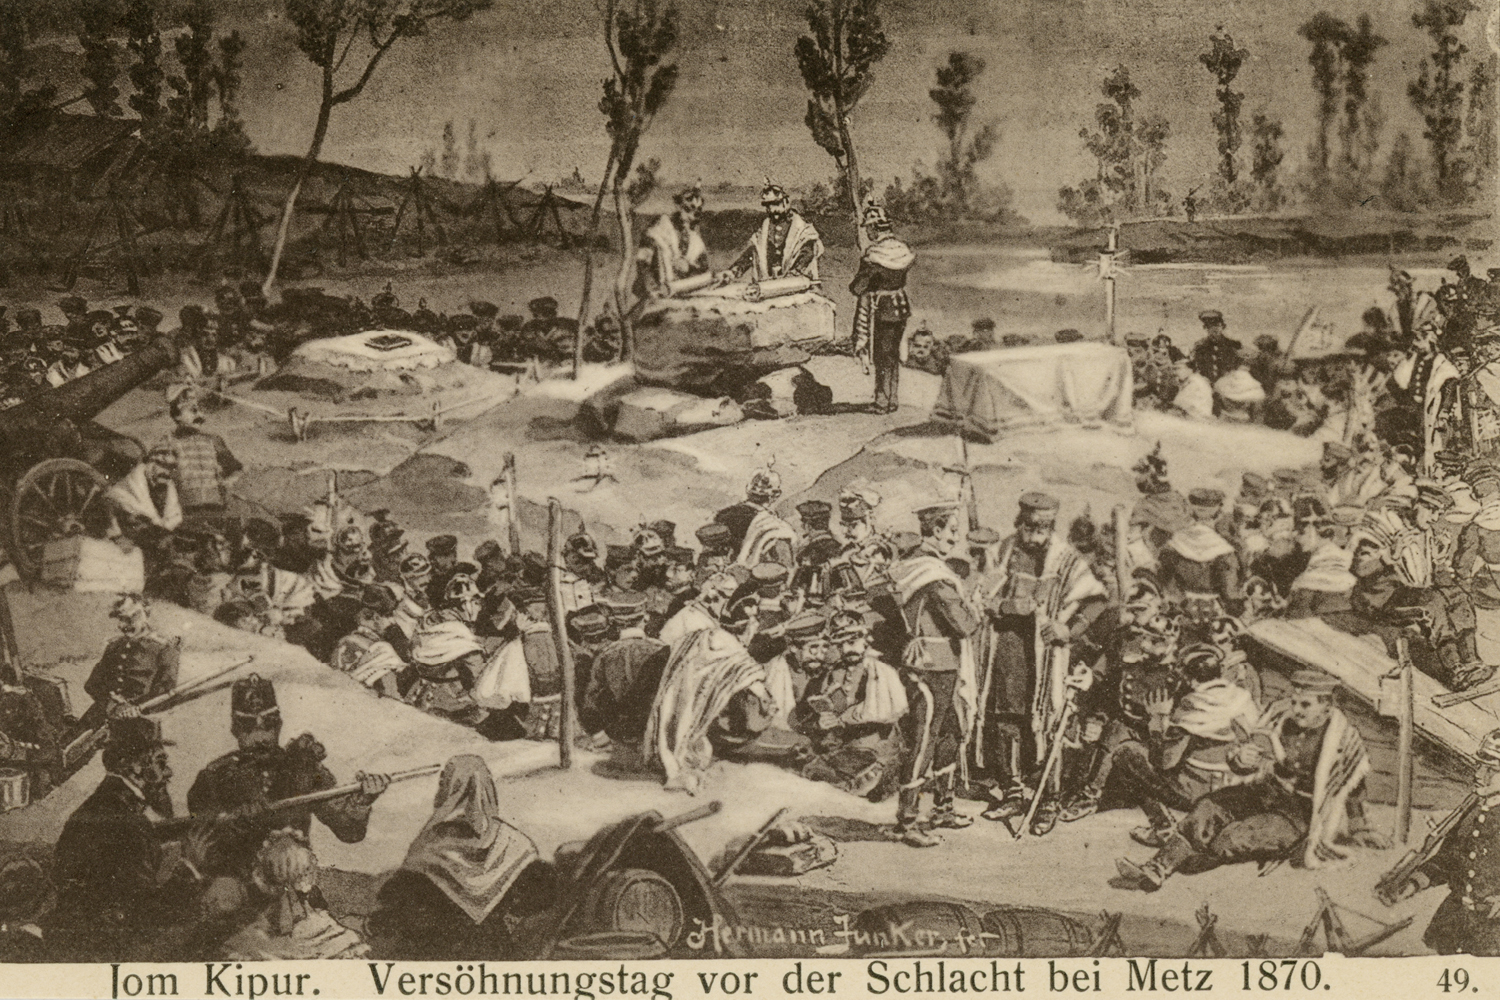 Yom Kippur. Day of Atonement before the Battle of Metz 1870.